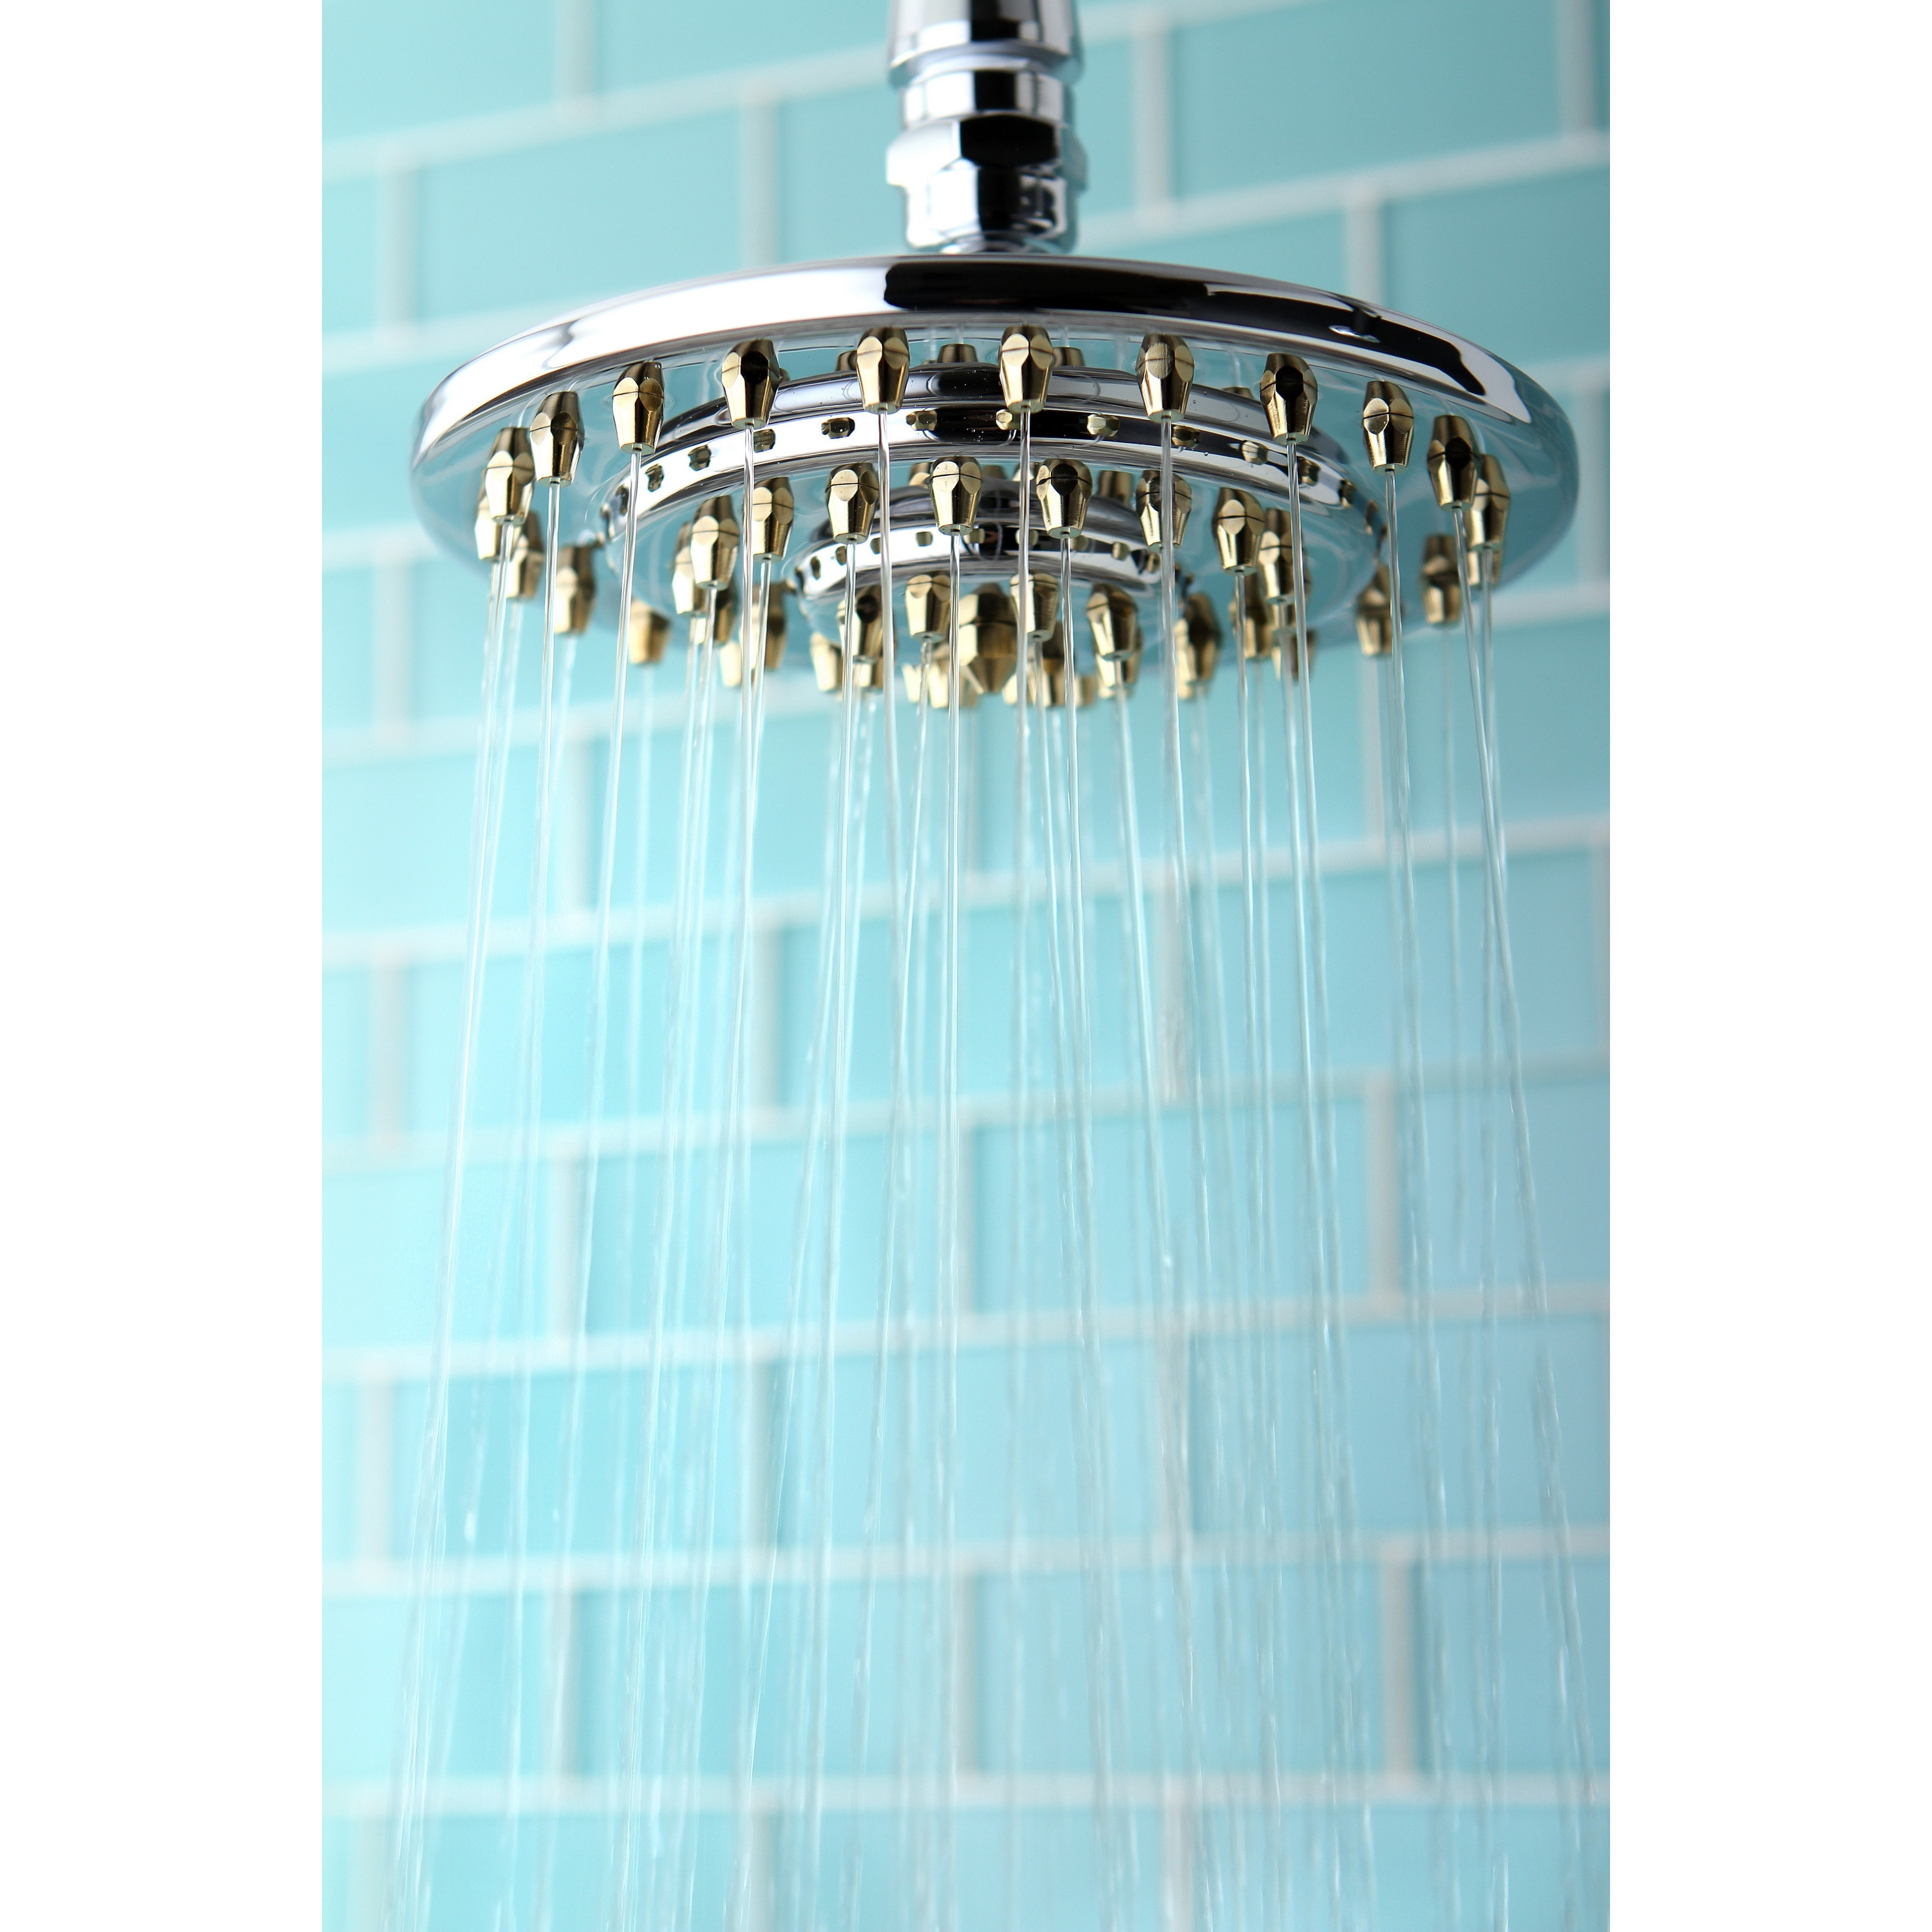 Details About Rainfall Chrome Polished Brass 6 Inch Shower Head Silver